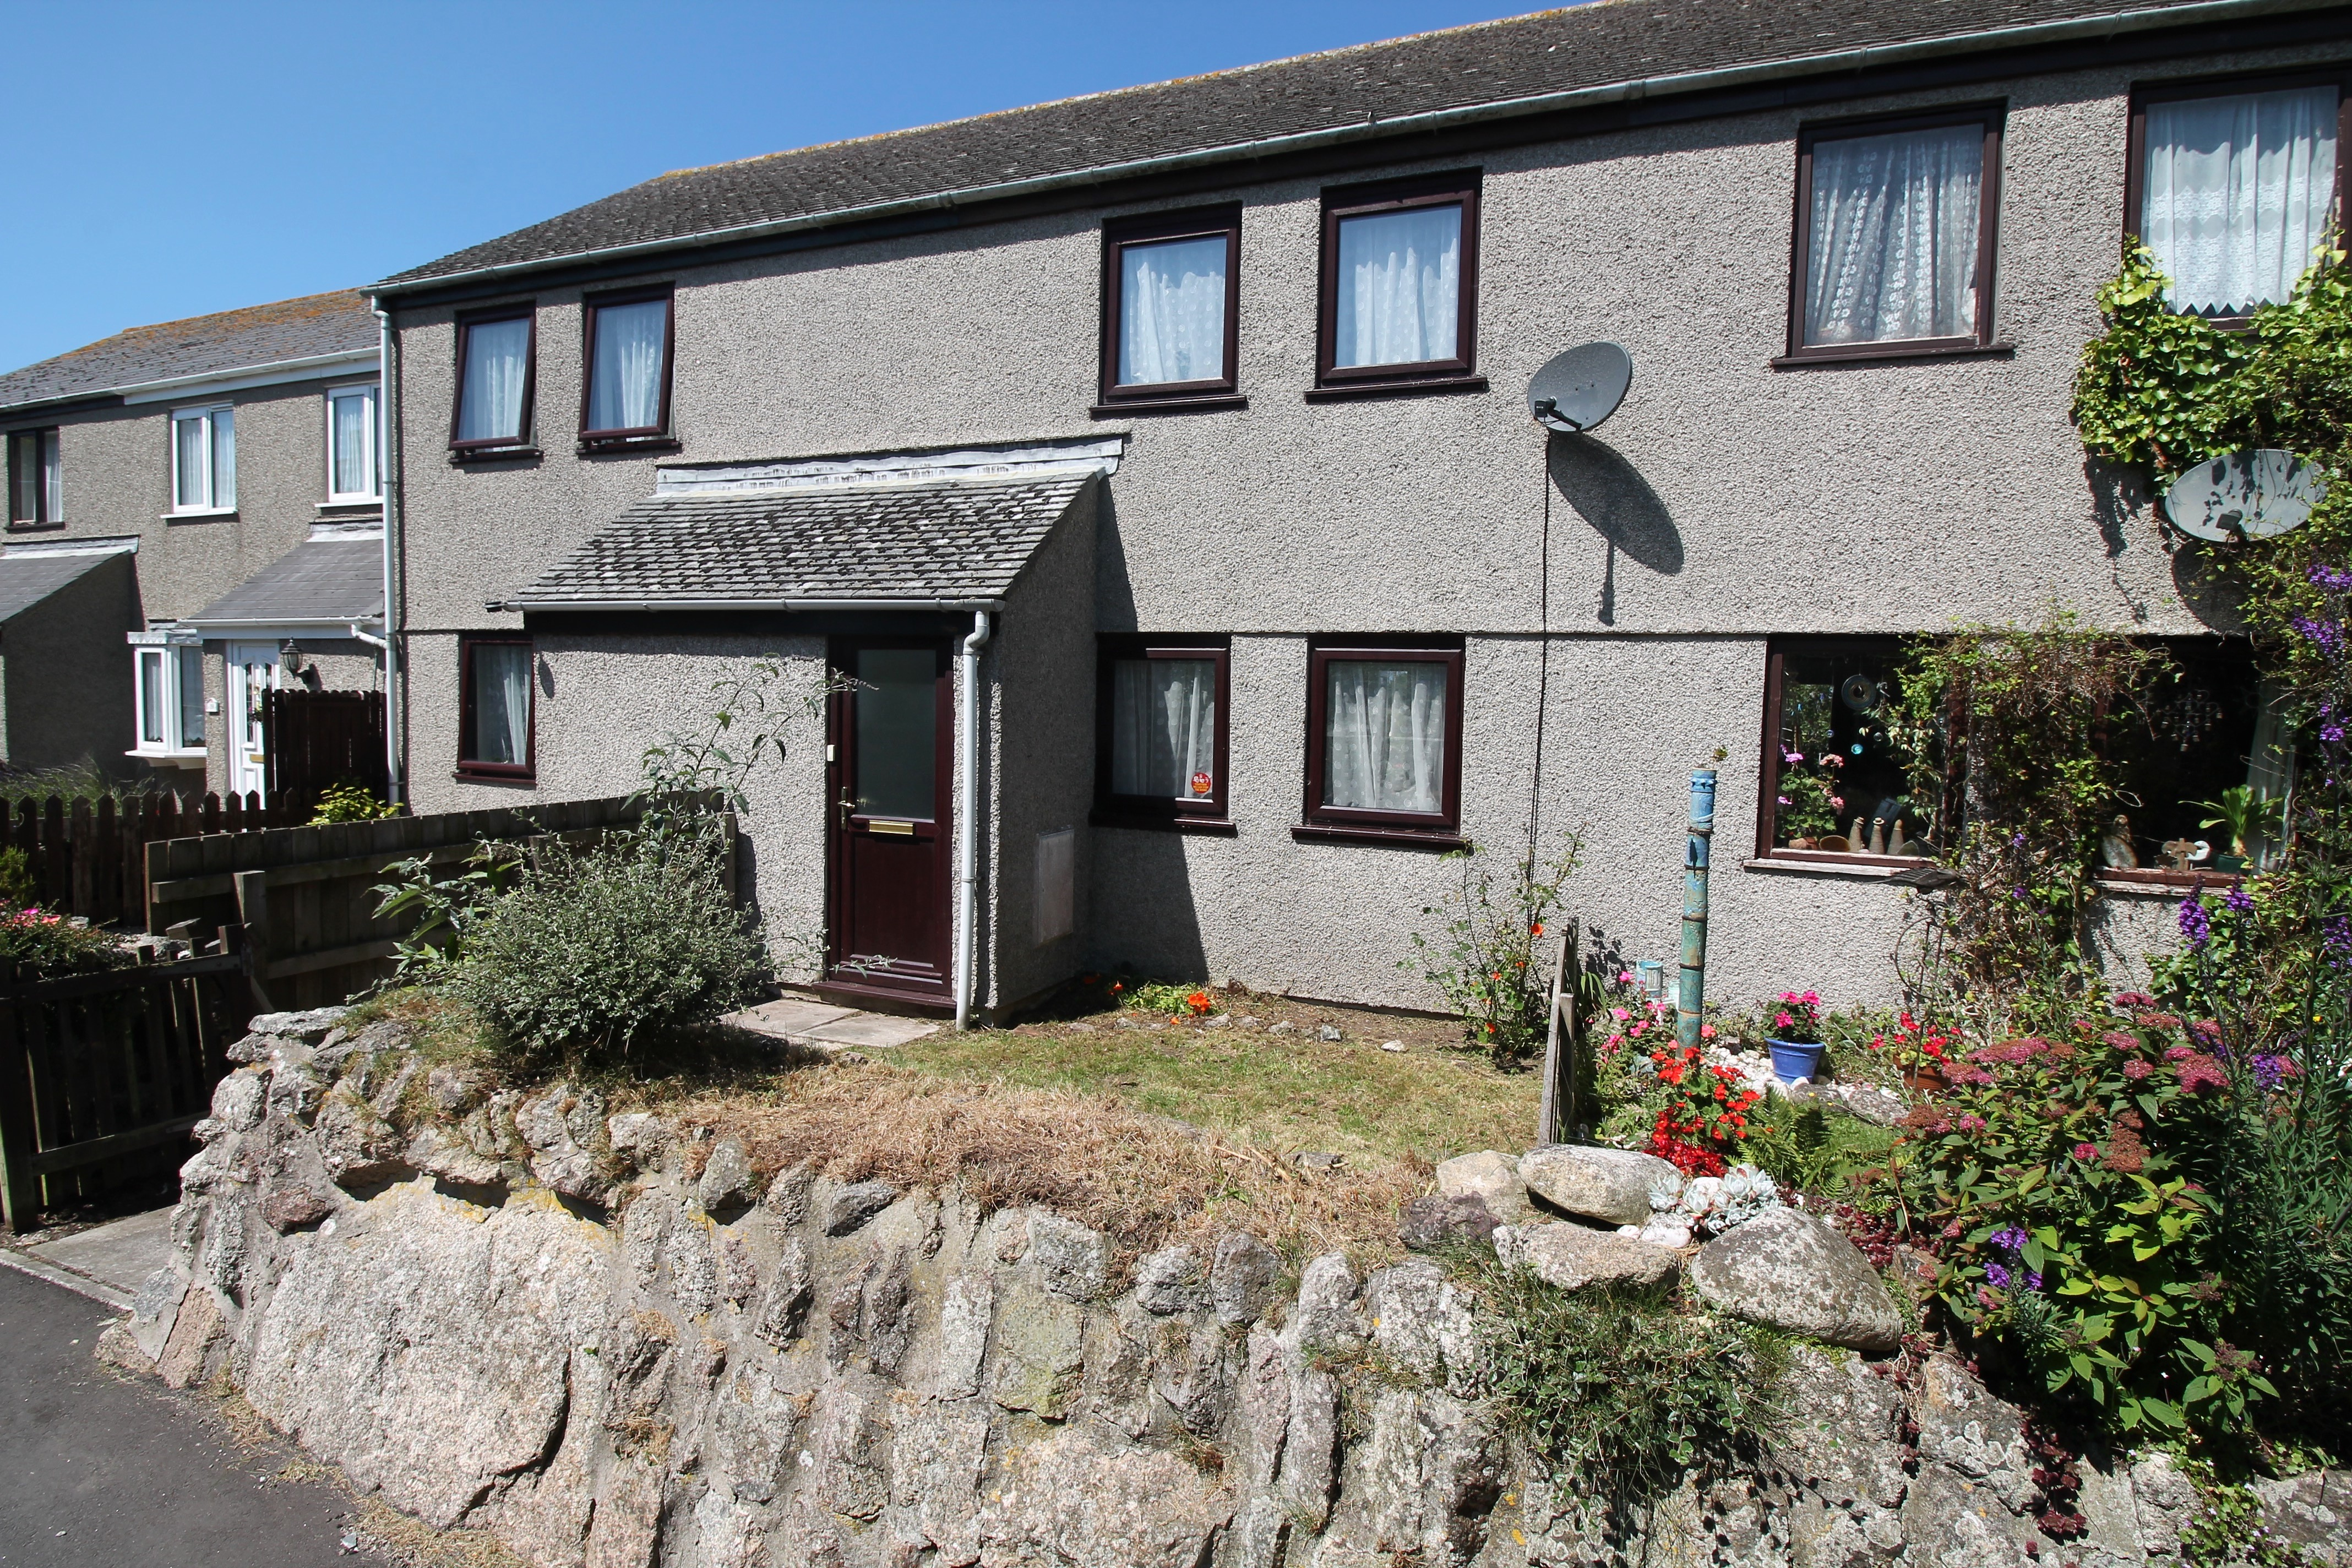 21 South Place Gardens, St Just, Penzance, Cornwall, TR19 7UJ image